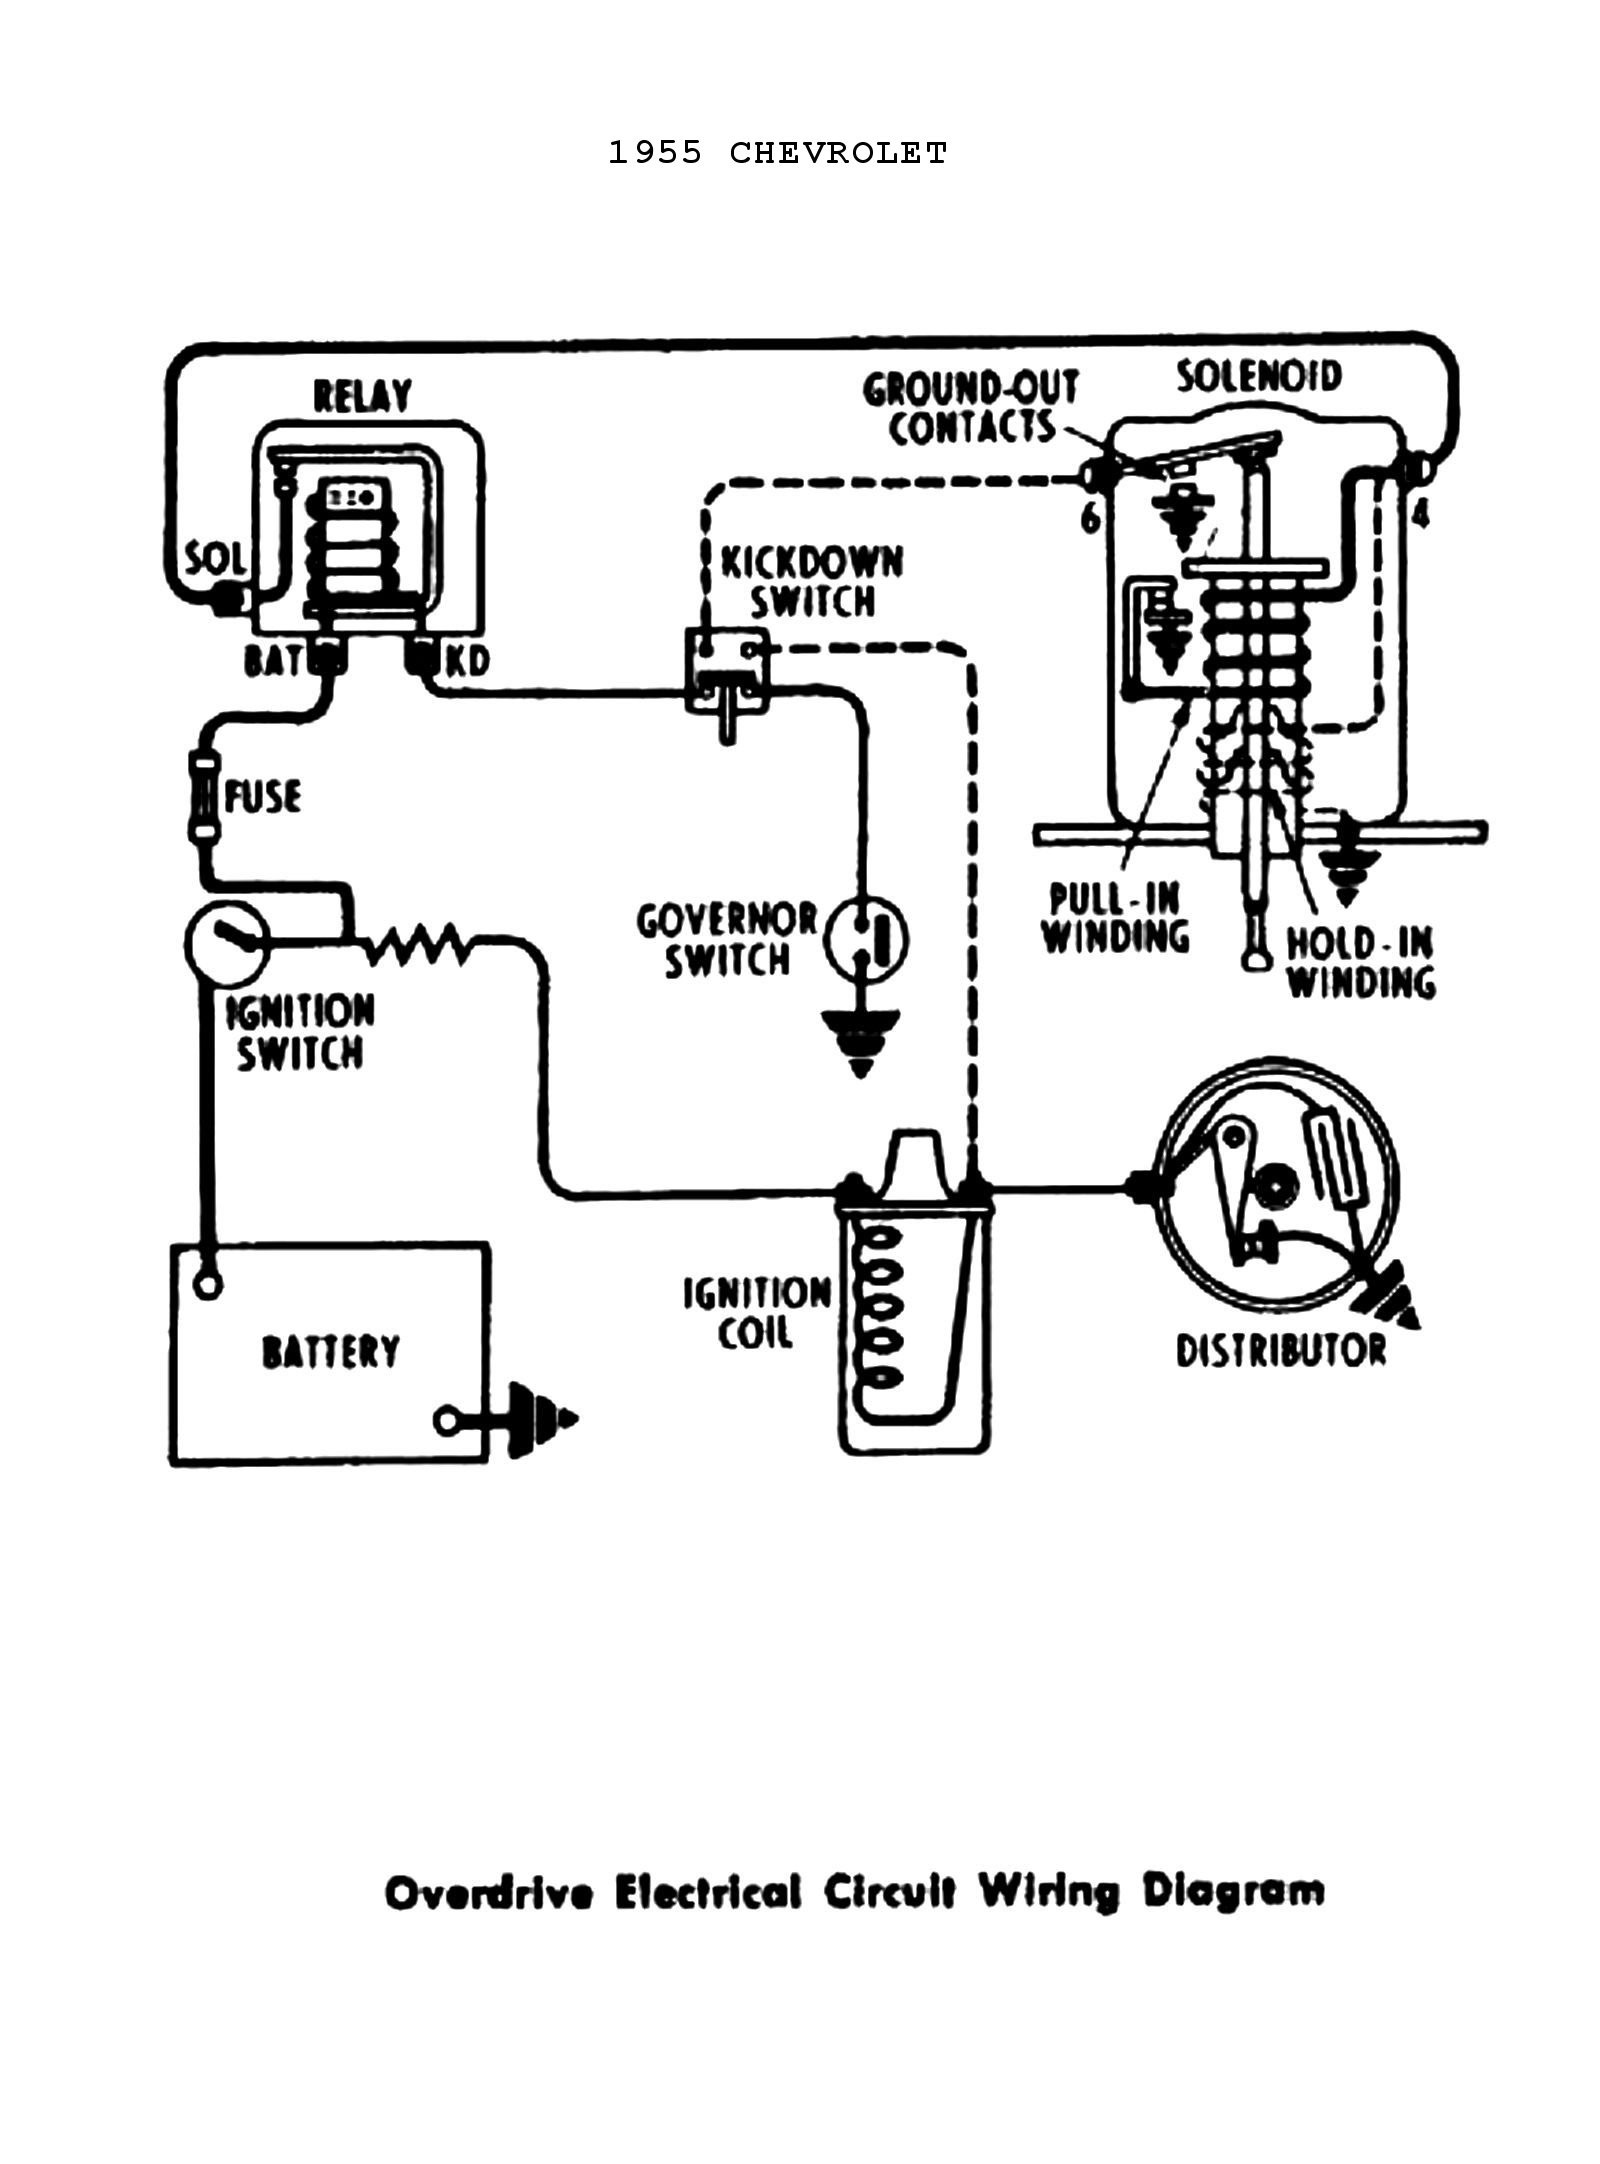 Club car wiring diagram ignition switch wiring diagram wiring diagram of club car wiring diagram